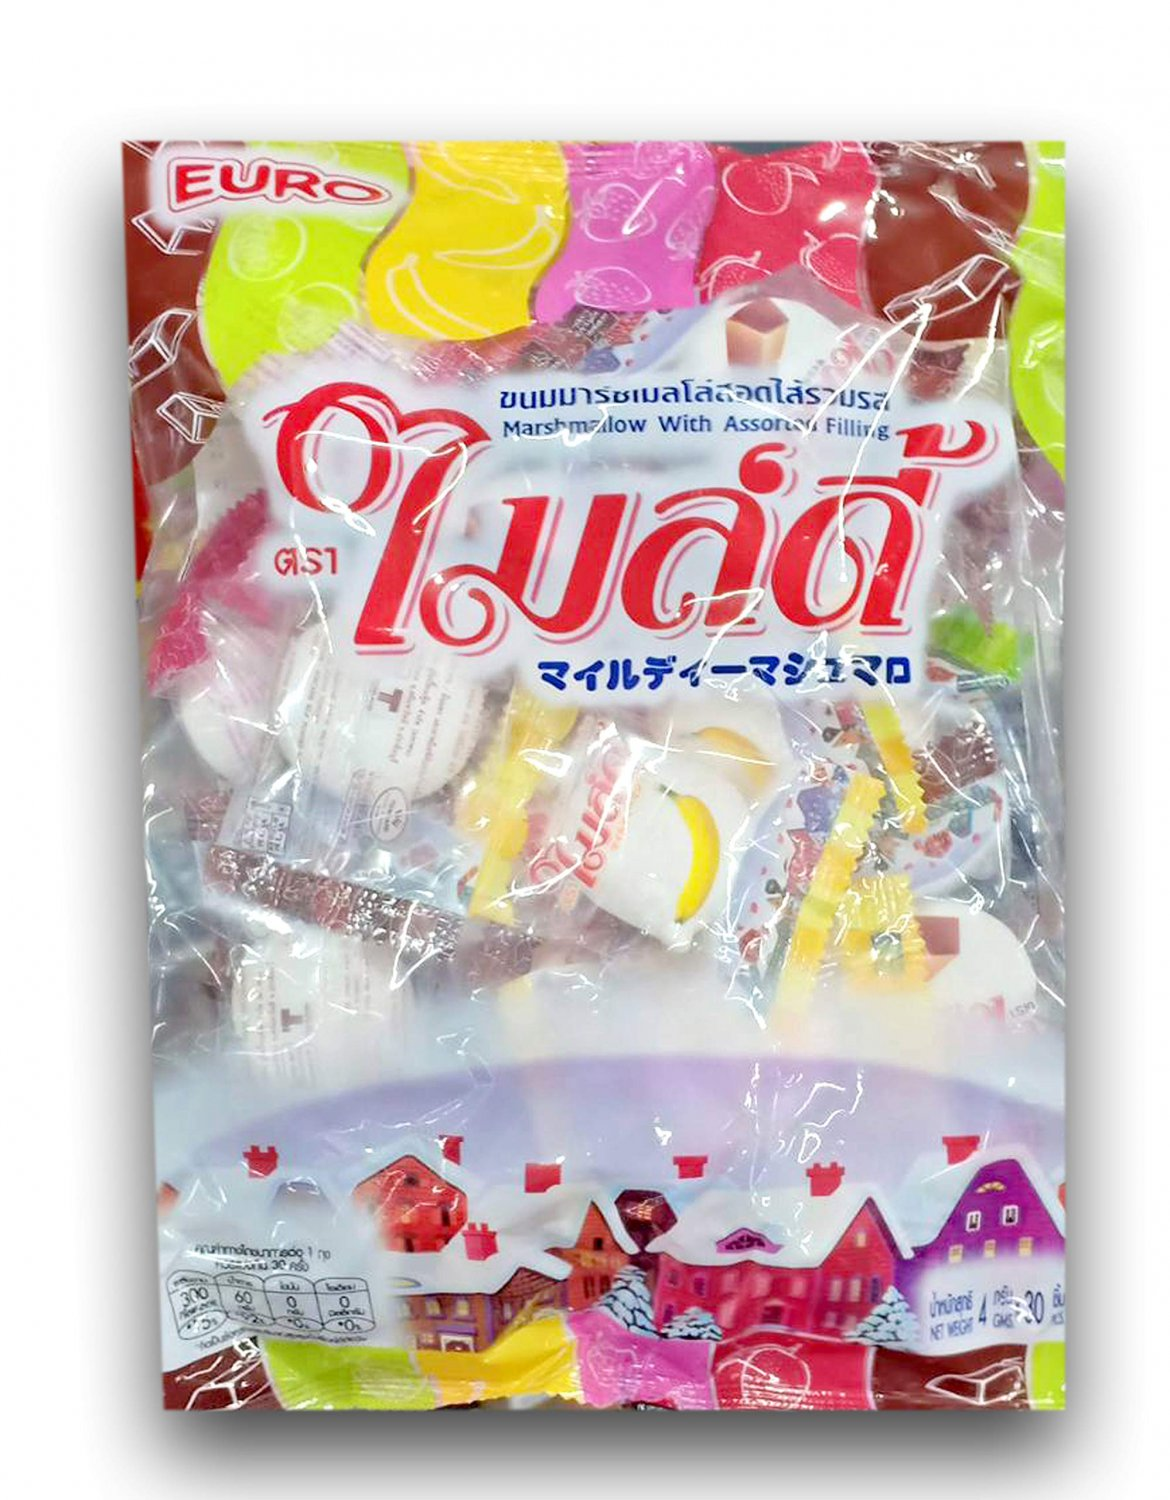 Mildy Marshmallow With Assorted Filling 120g x 4 Packs